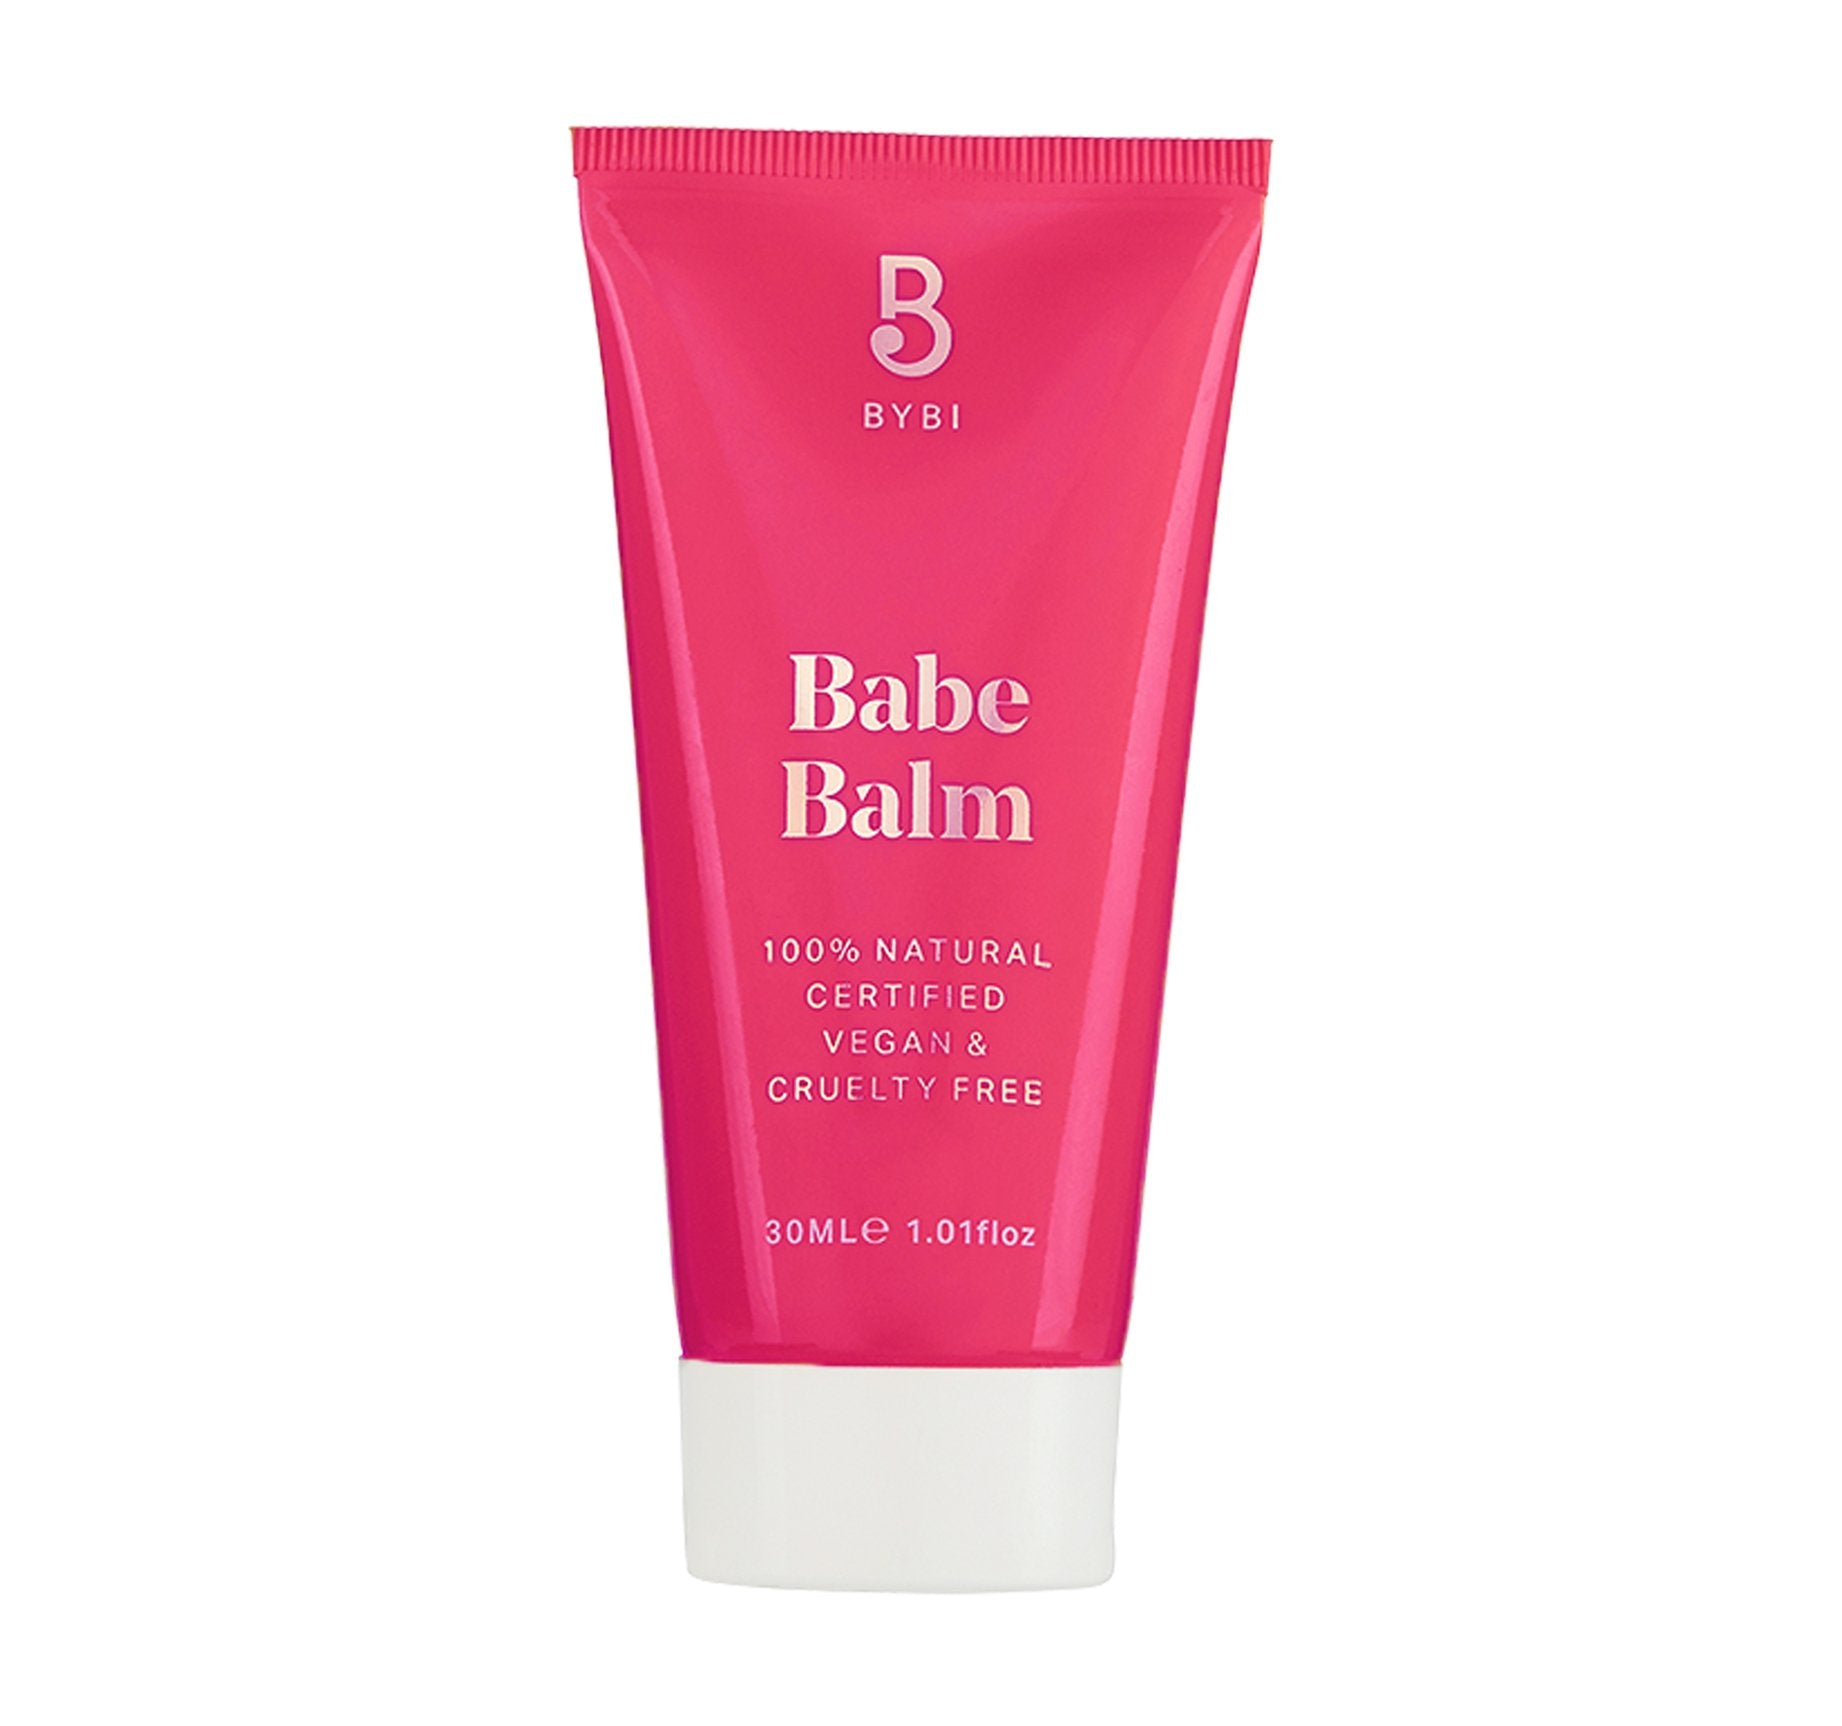 BABE BALM VEGAN MULTIPURPOSE BALM, view larger image